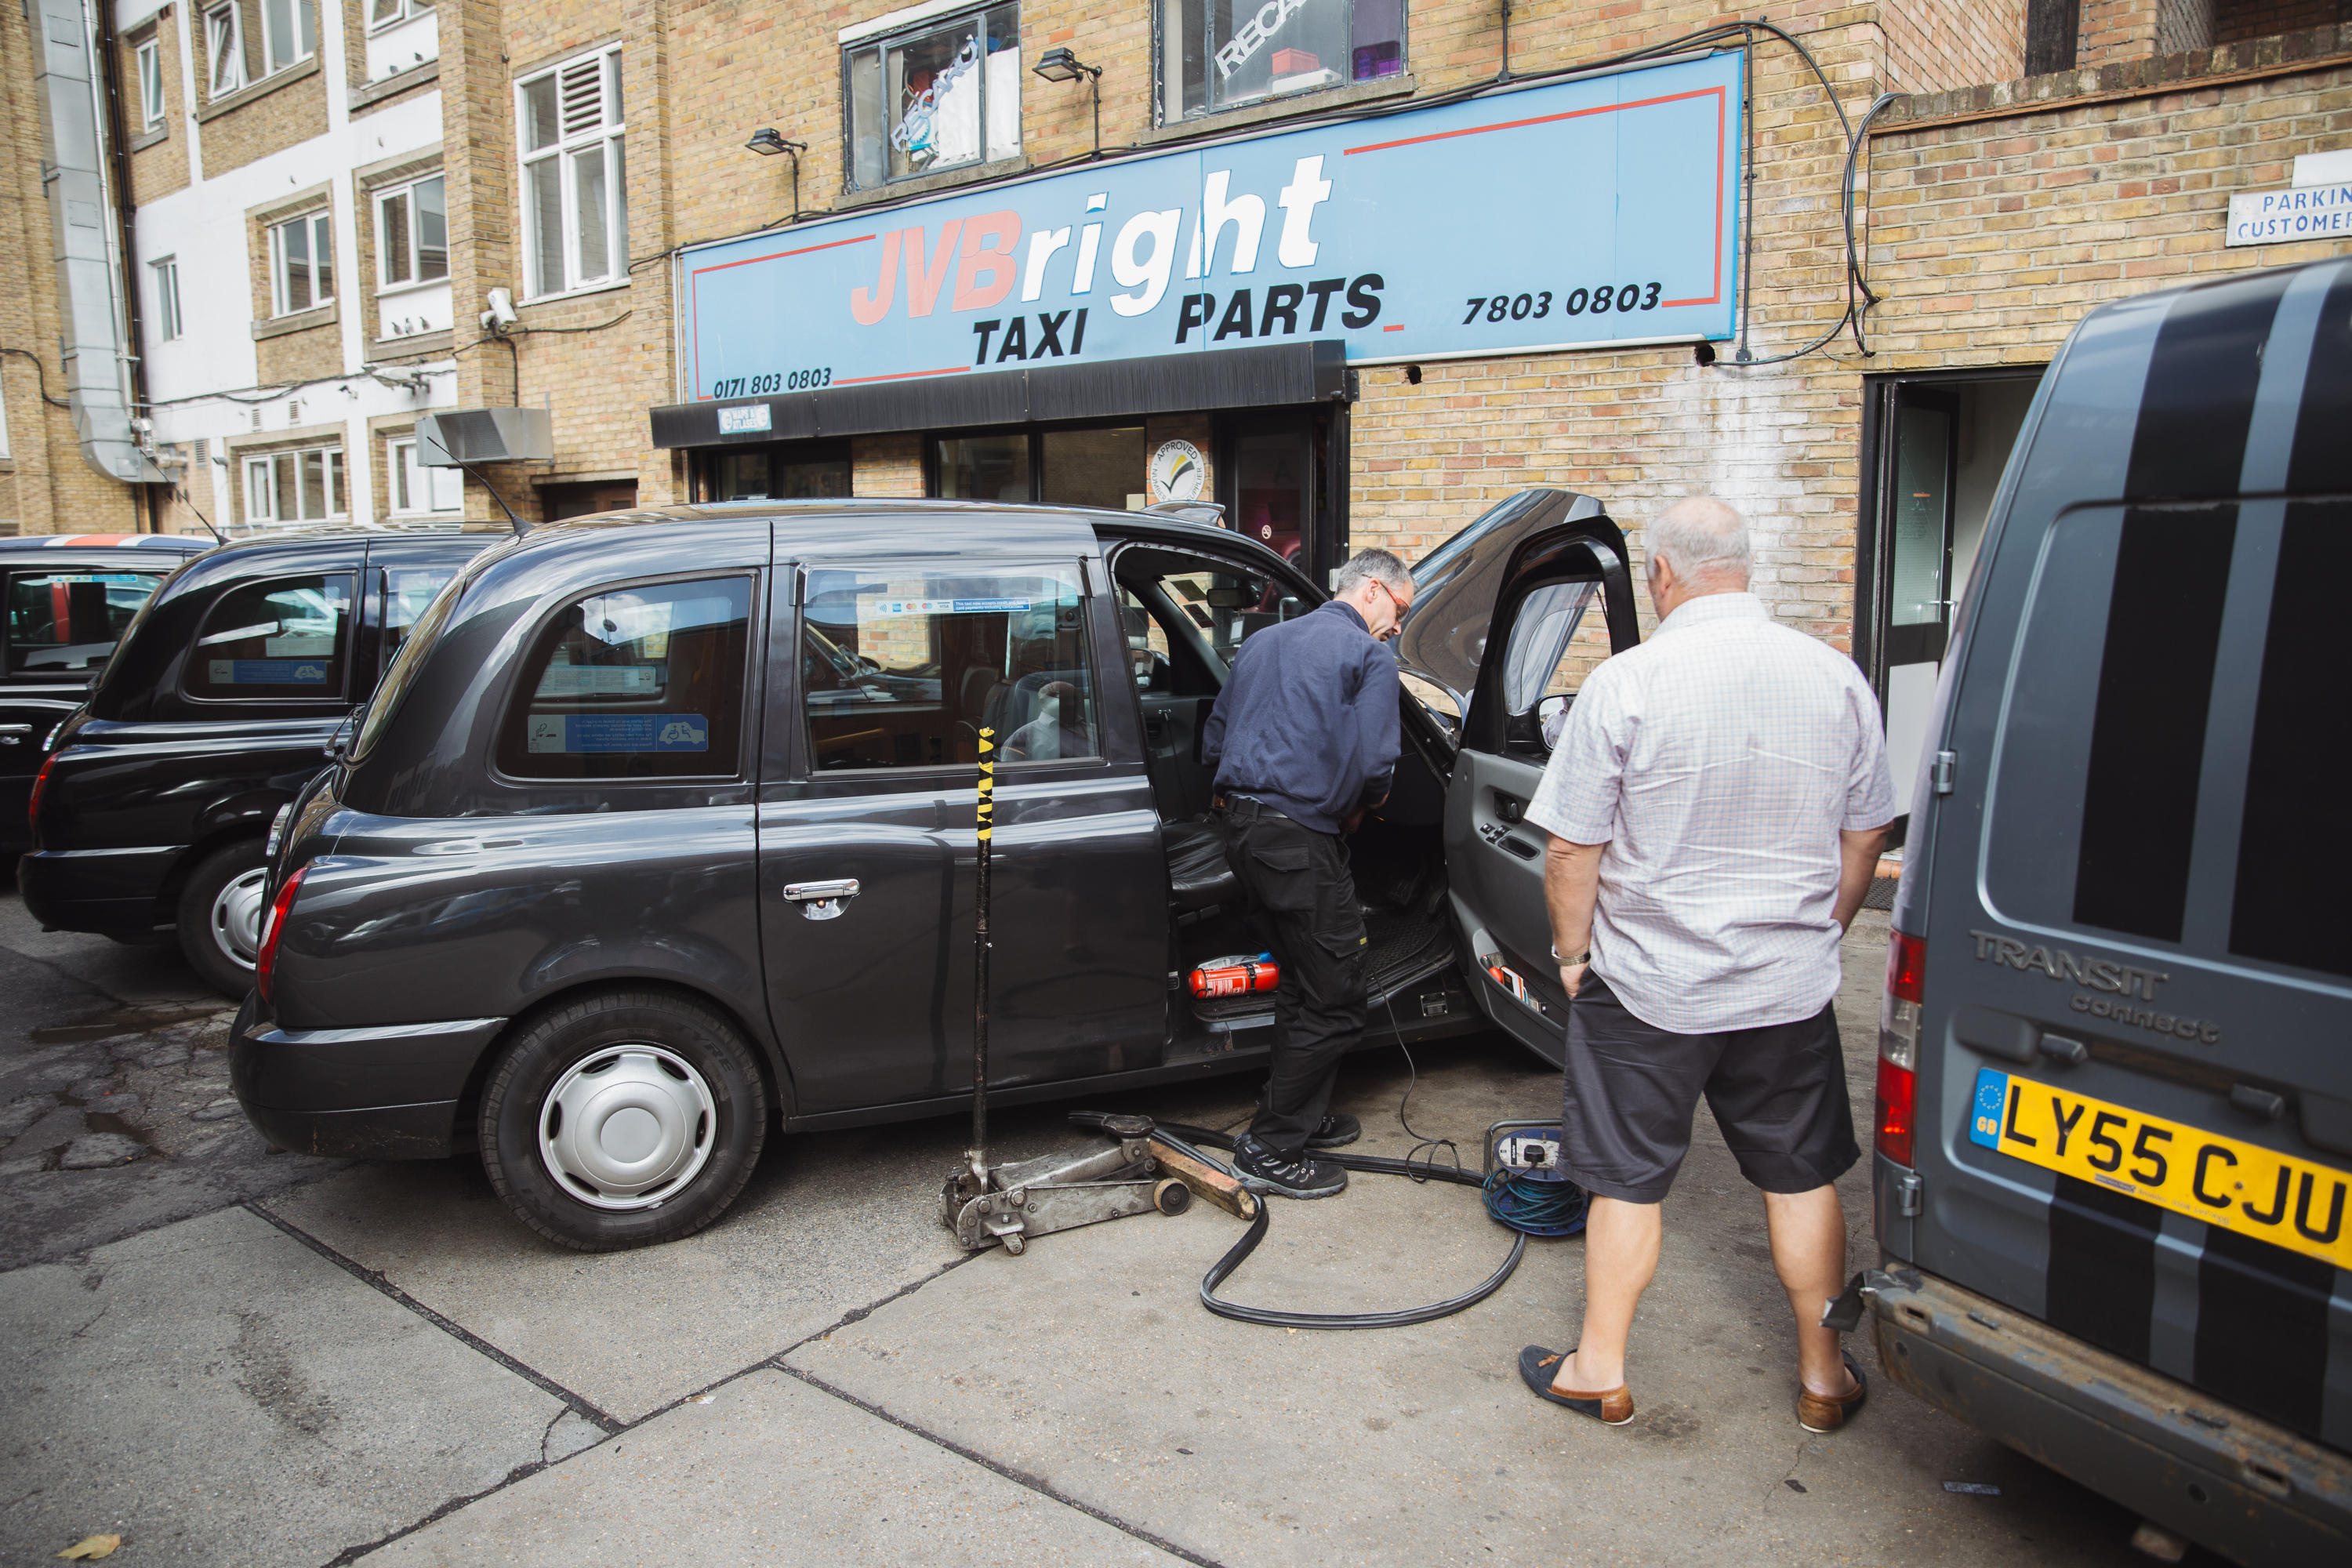 The Southwark station contains one of London's only mechanics businesses that caters solely to black cabs.